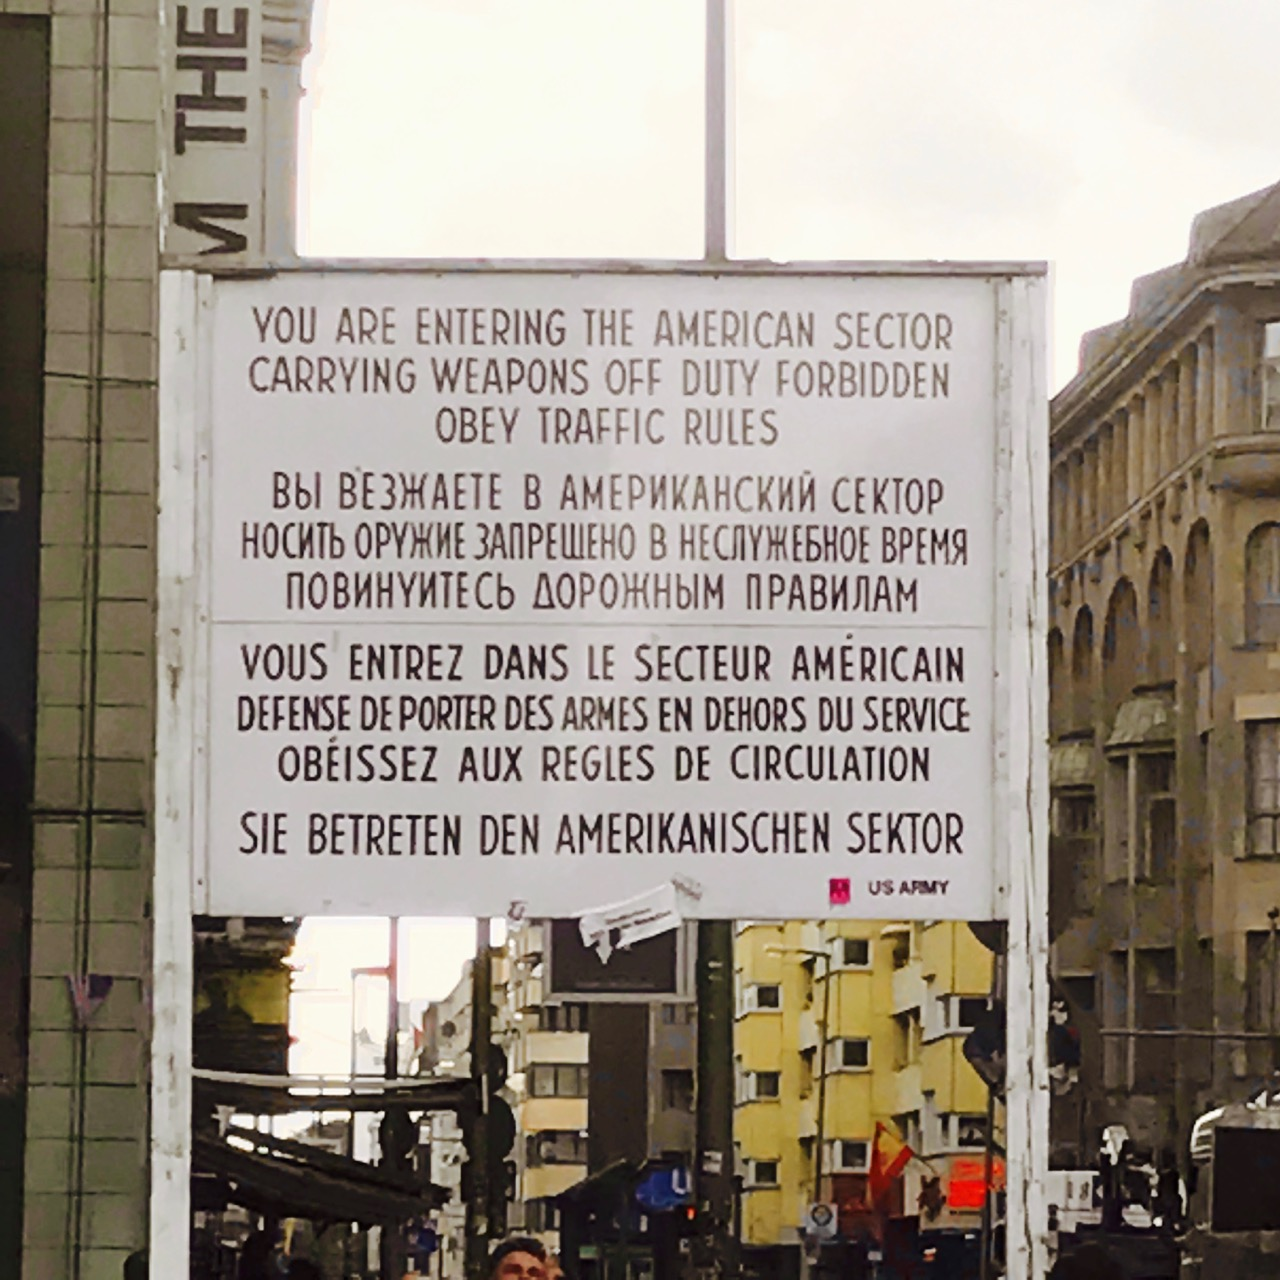 One of the original signs from Checkpoint Charlie.